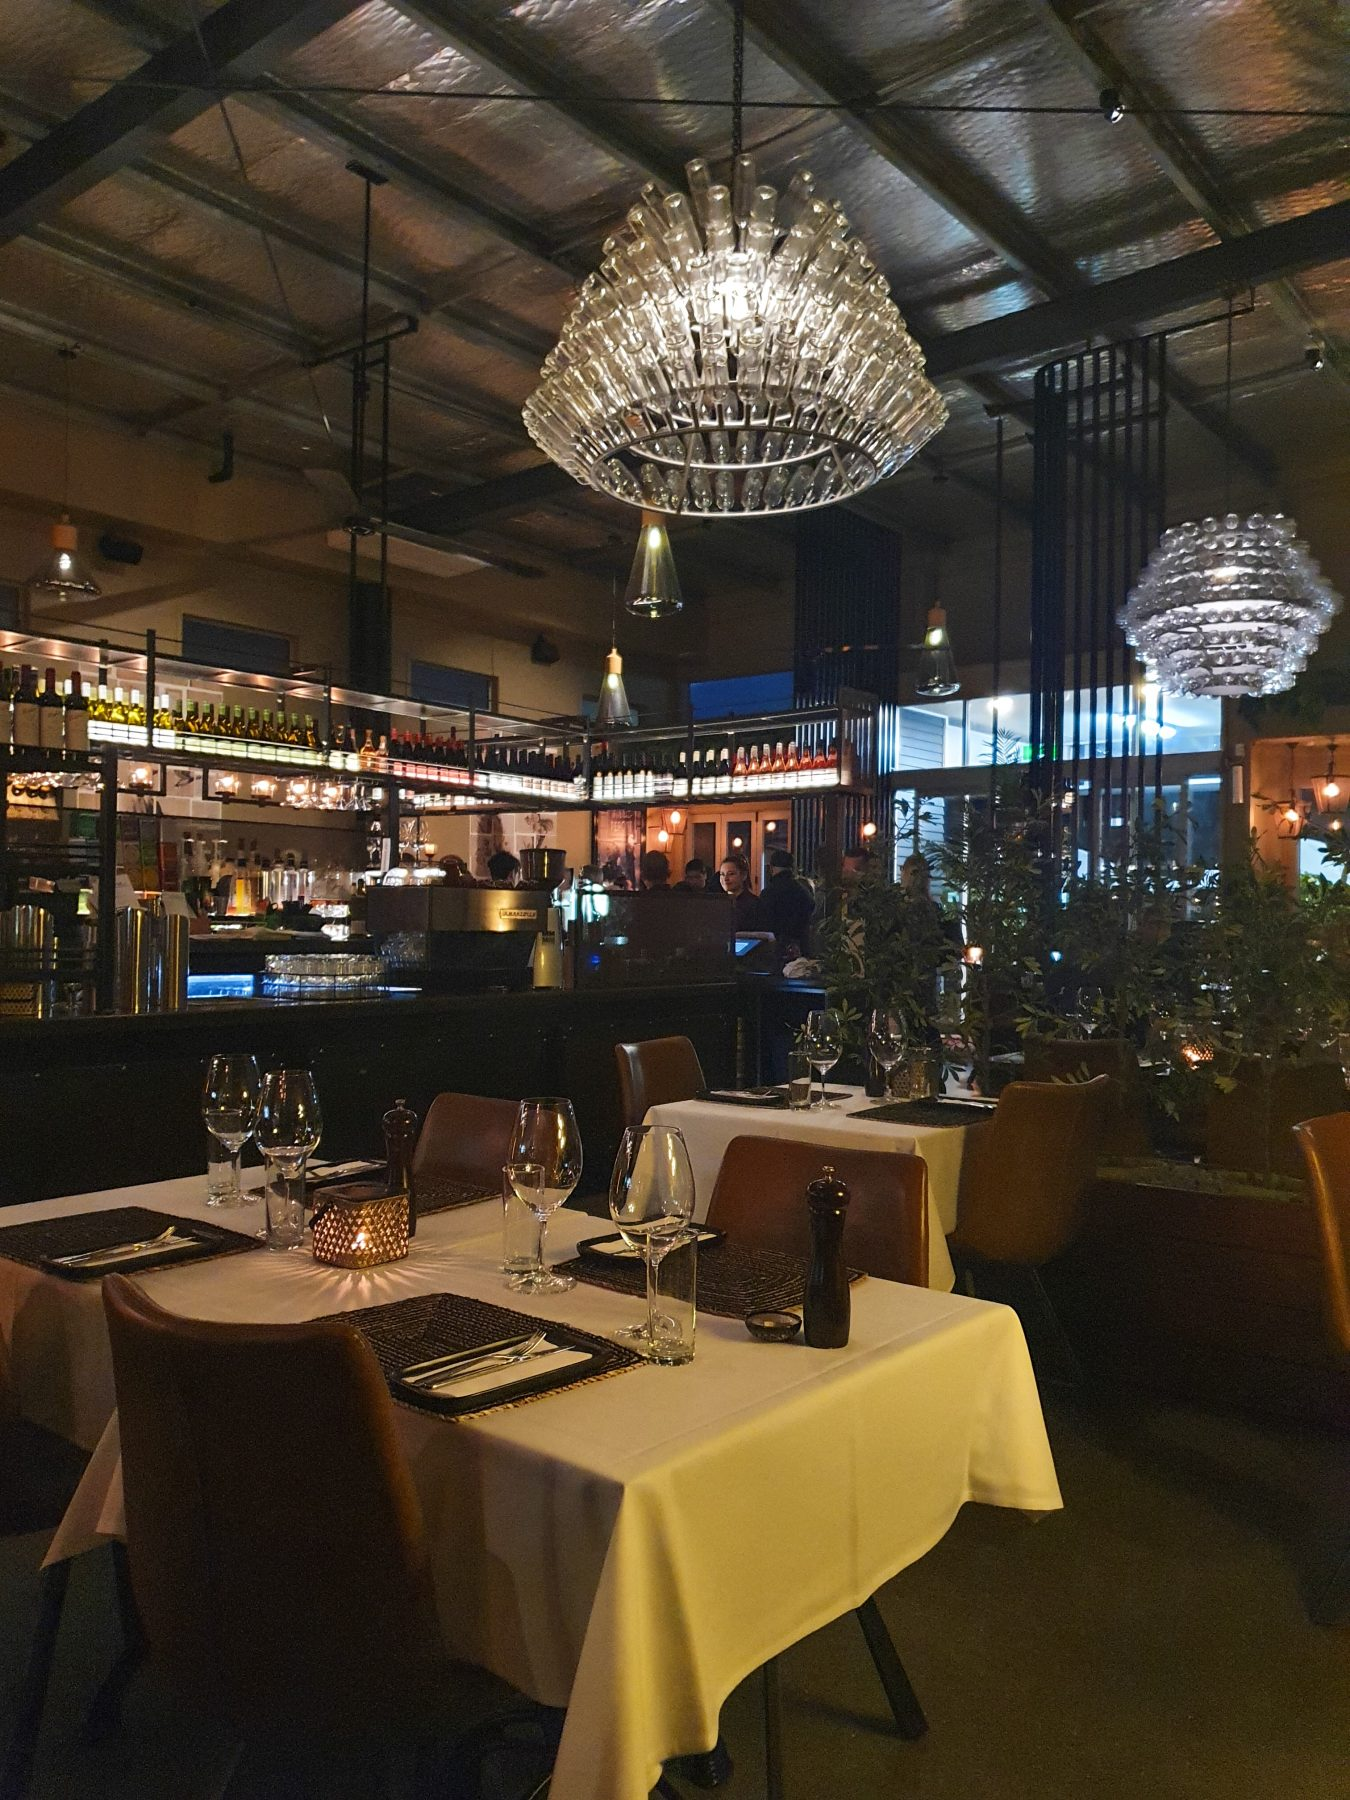 The Vine eatery and bar Taupo